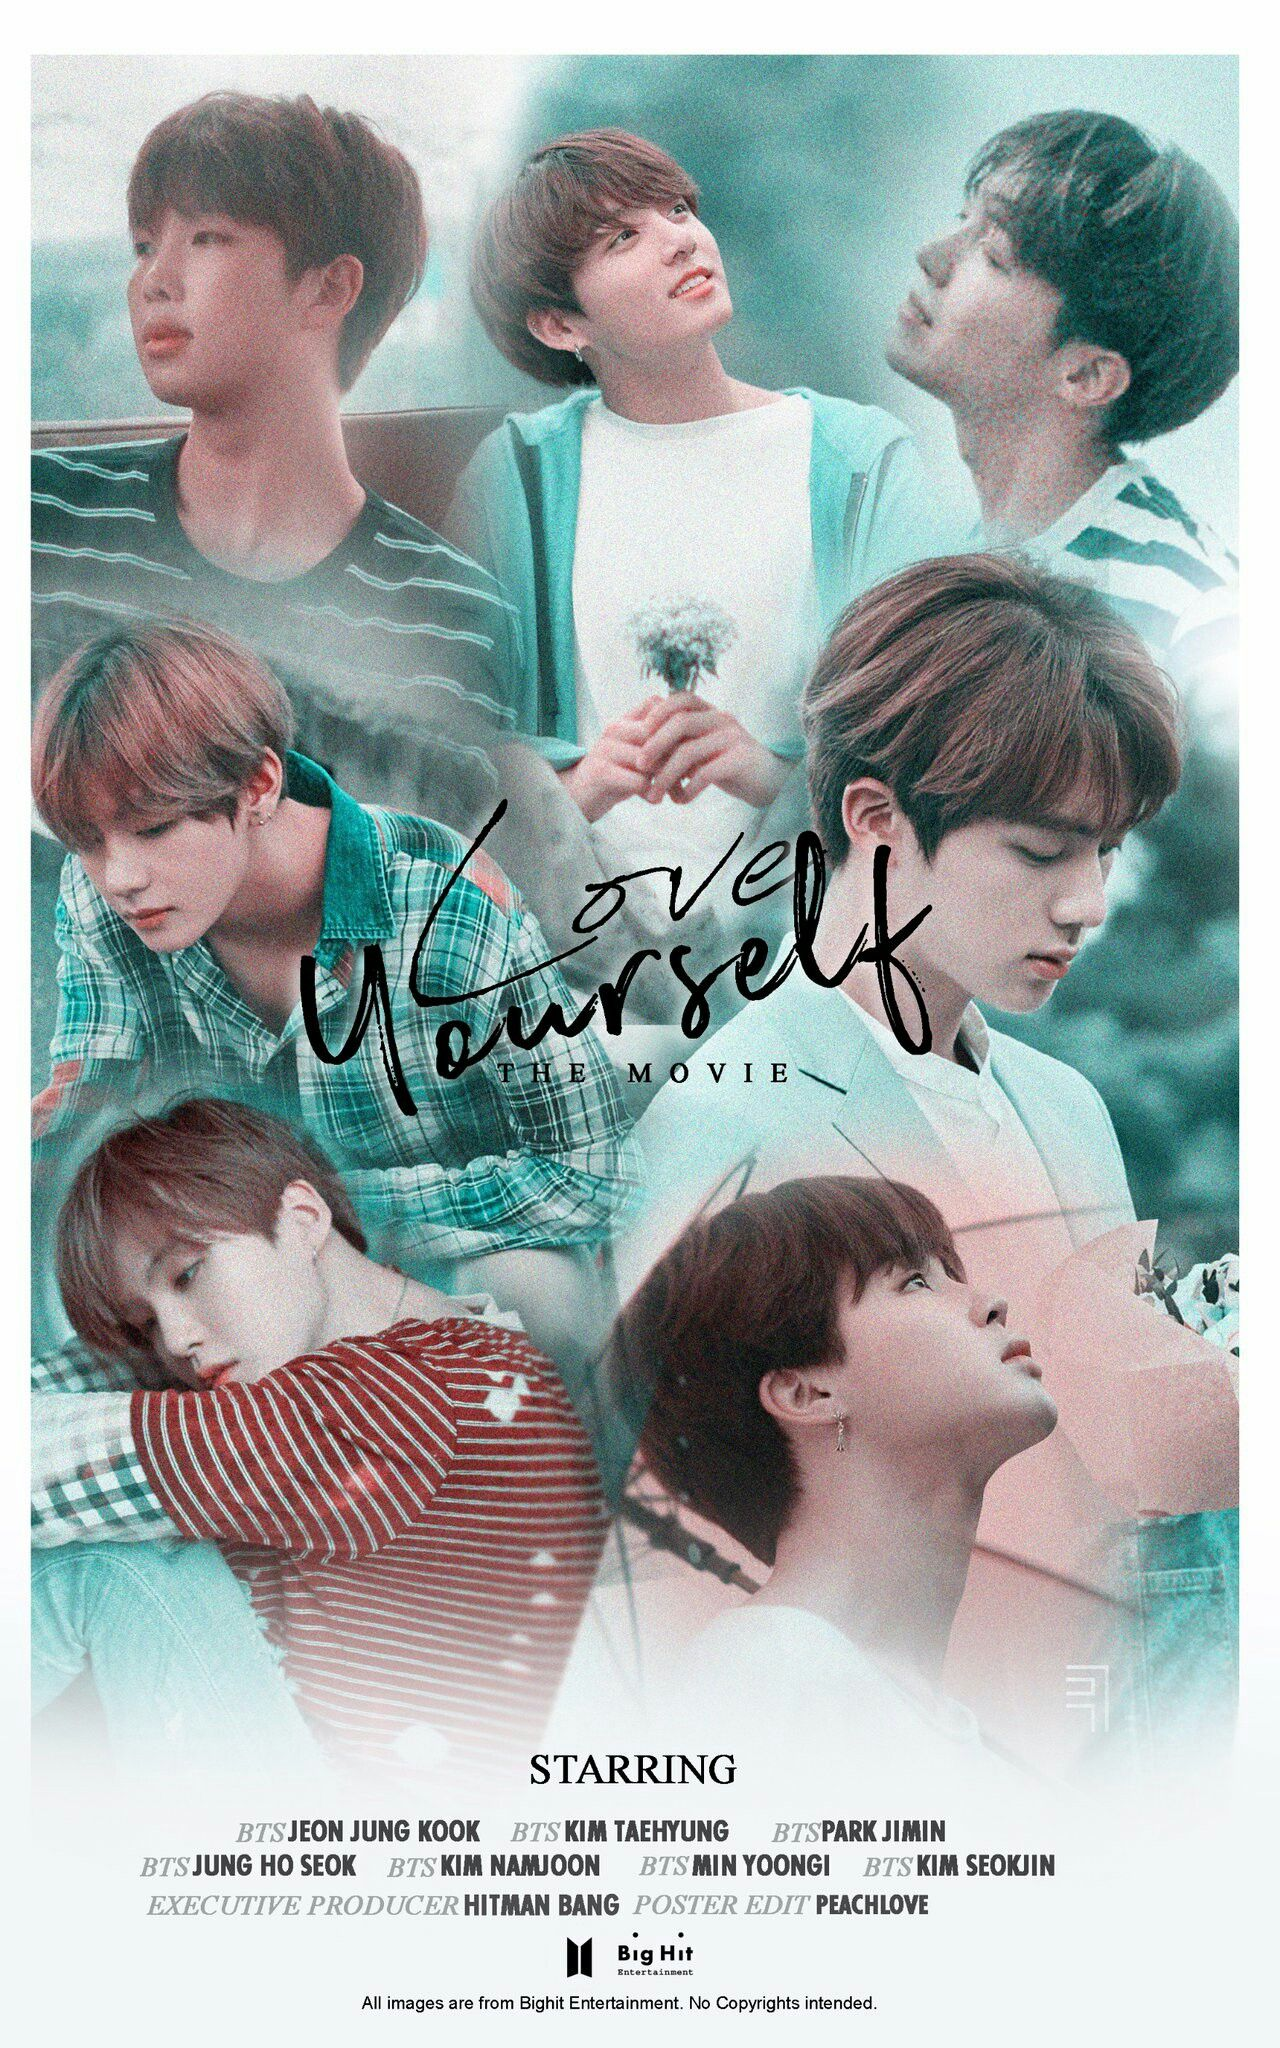 free download bts love yourself bts my everything pinterest bts 1280x2048 for your desktop mobile tablet explore 100 bts love yourself wallpapers bts love yourself wallpapers bts love yourself free download bts love yourself bts my